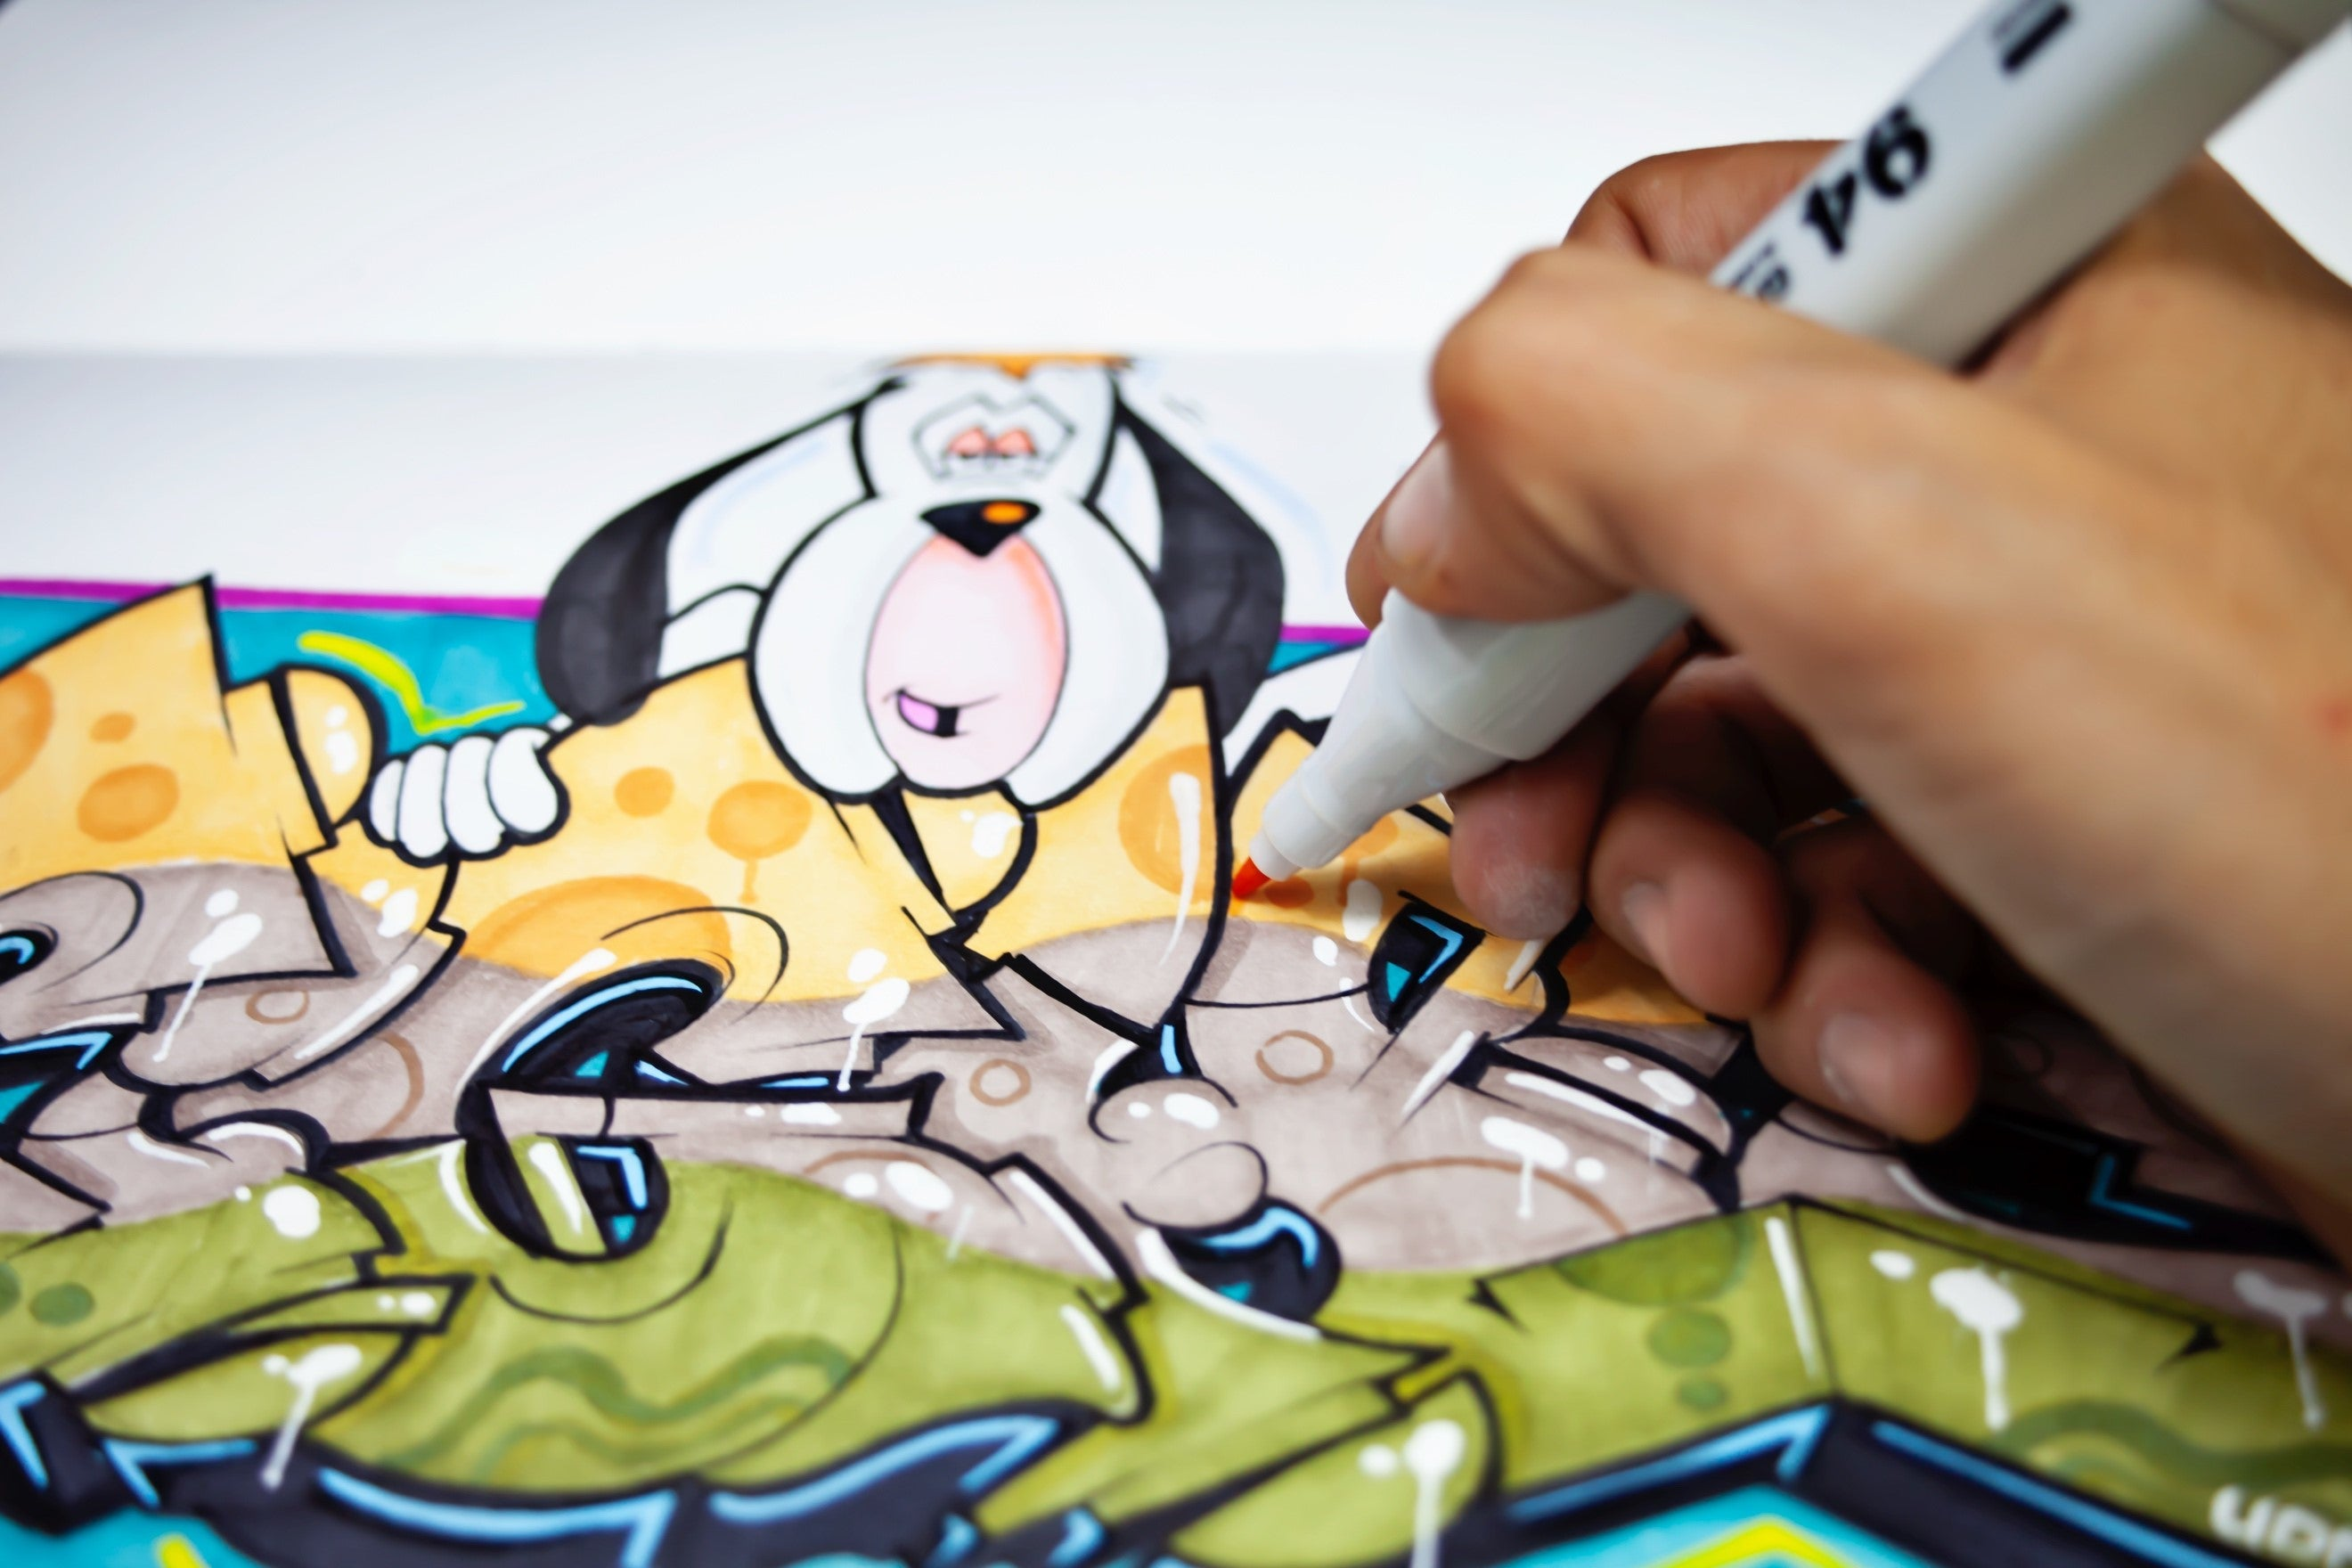 Graffiti Product Review: Montana Colors 94 Markers and Sketchbooks